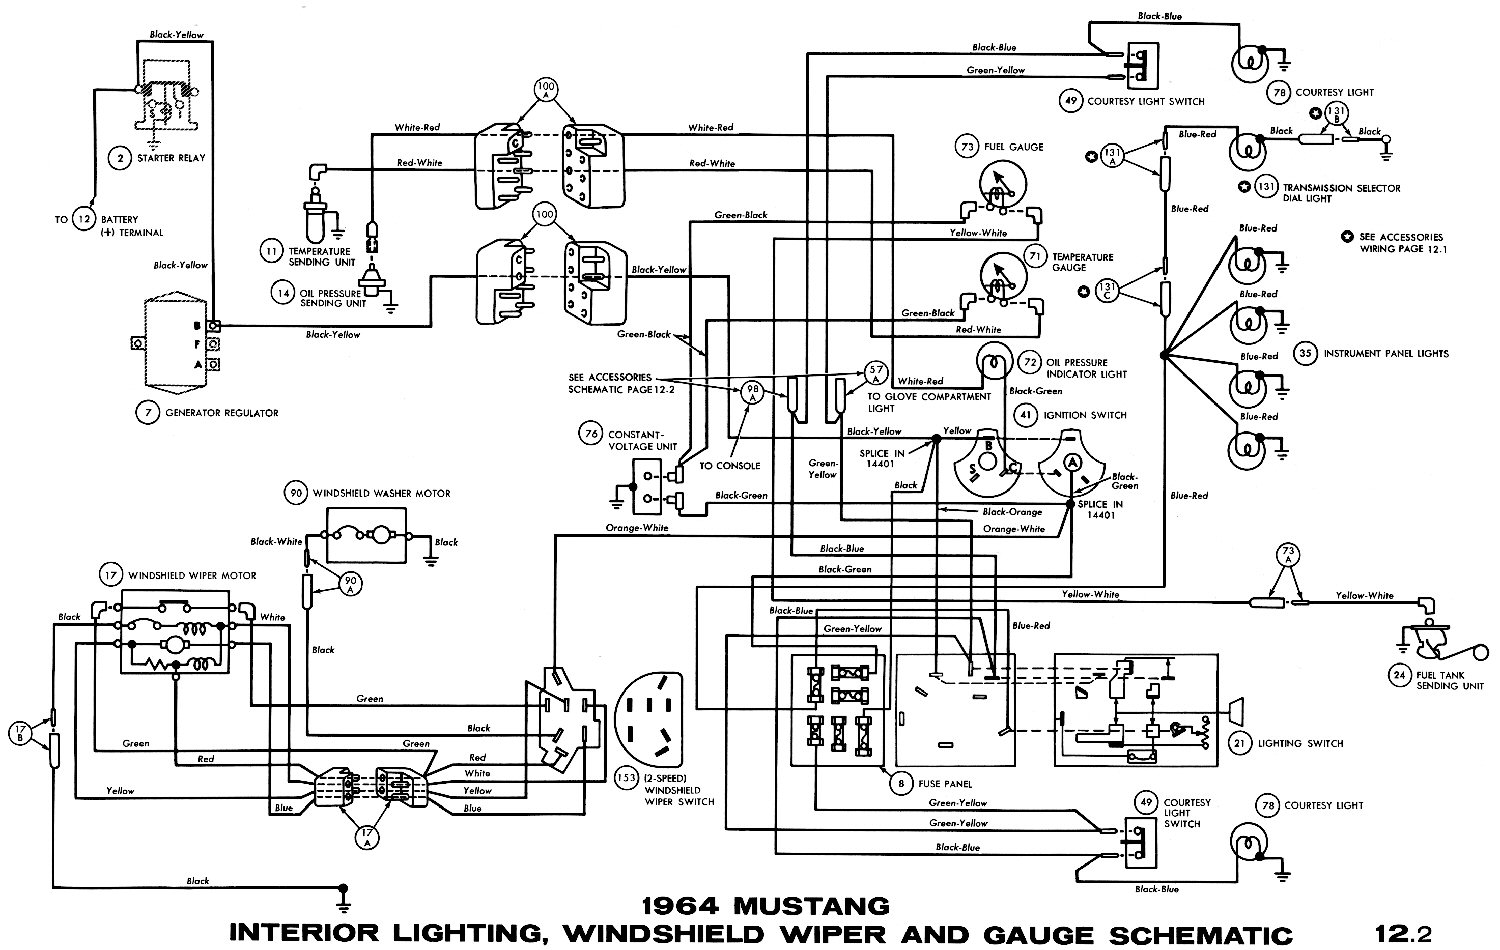 wiring diagram 1966 mustang ireleast info 1964 mustang wiring diagrams average joe restoration wiring diagram